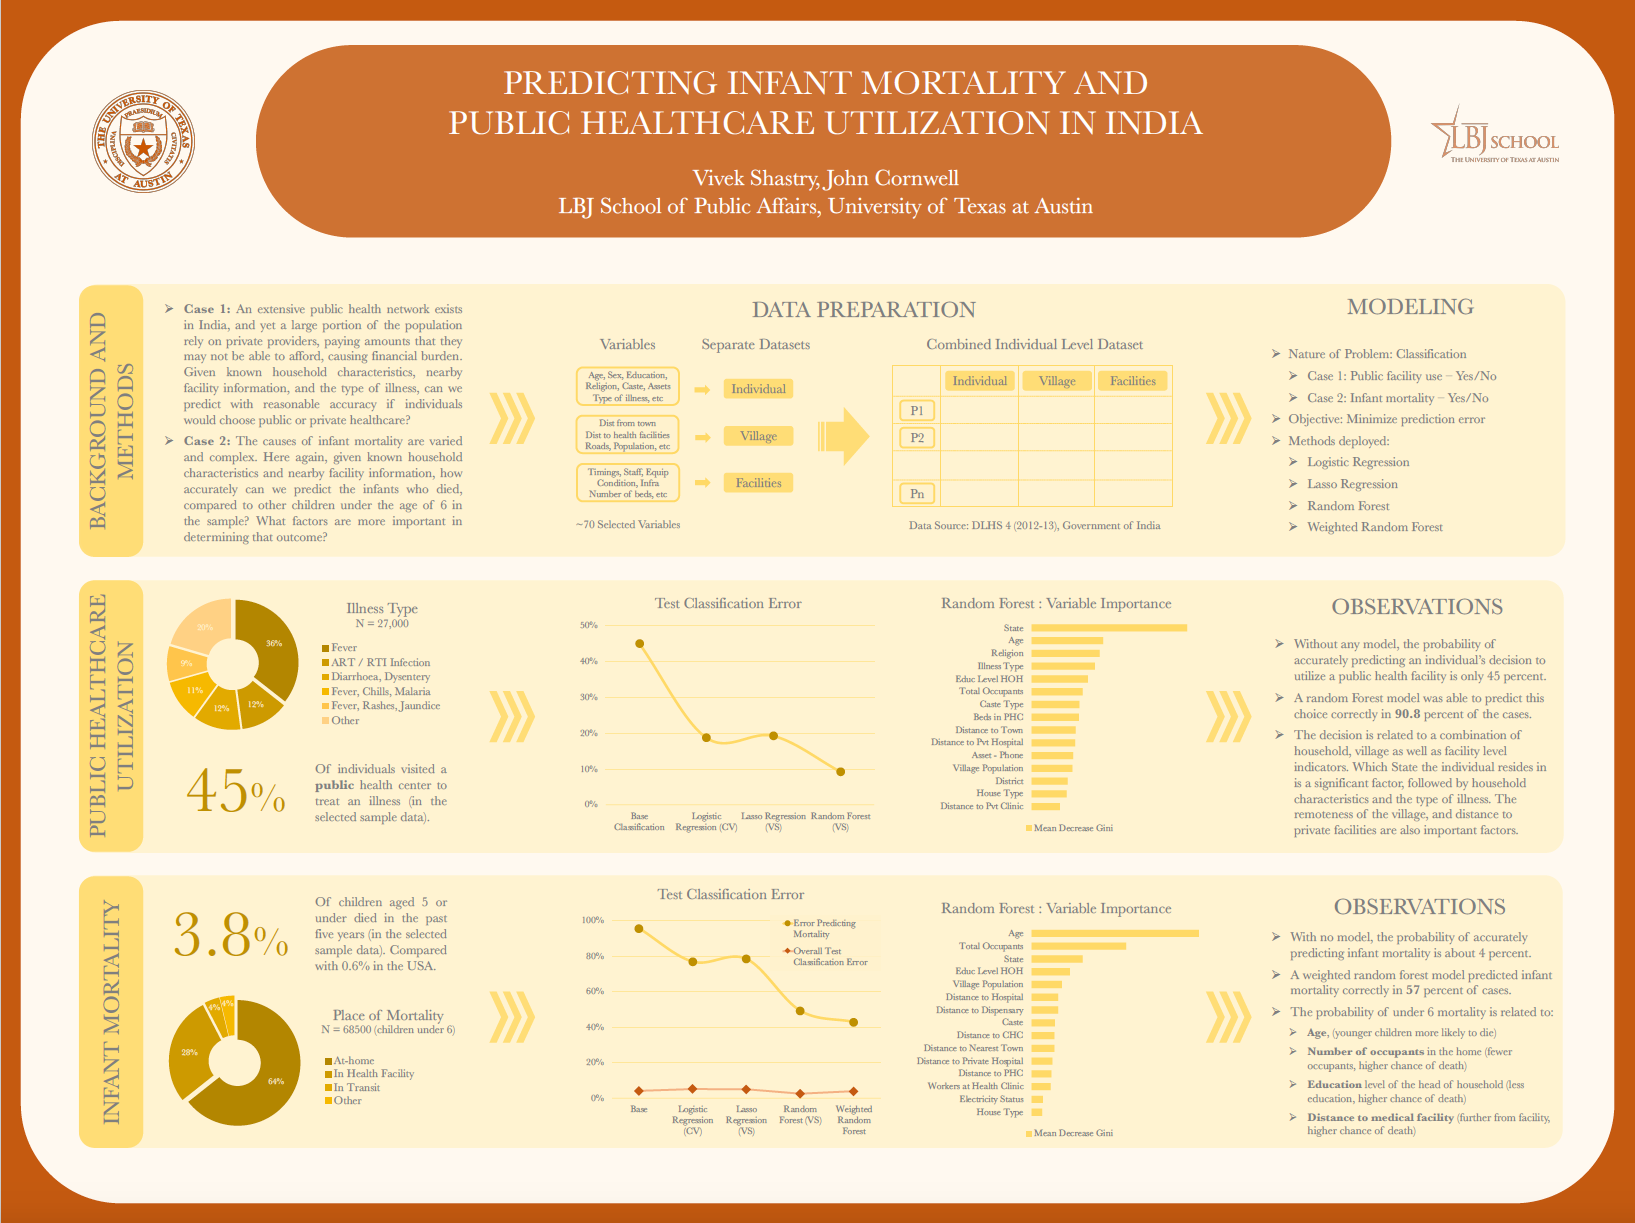 Innovation Bound 2019 research poster: Predicting Infant Mortality and Public Healthcare Utilization in India